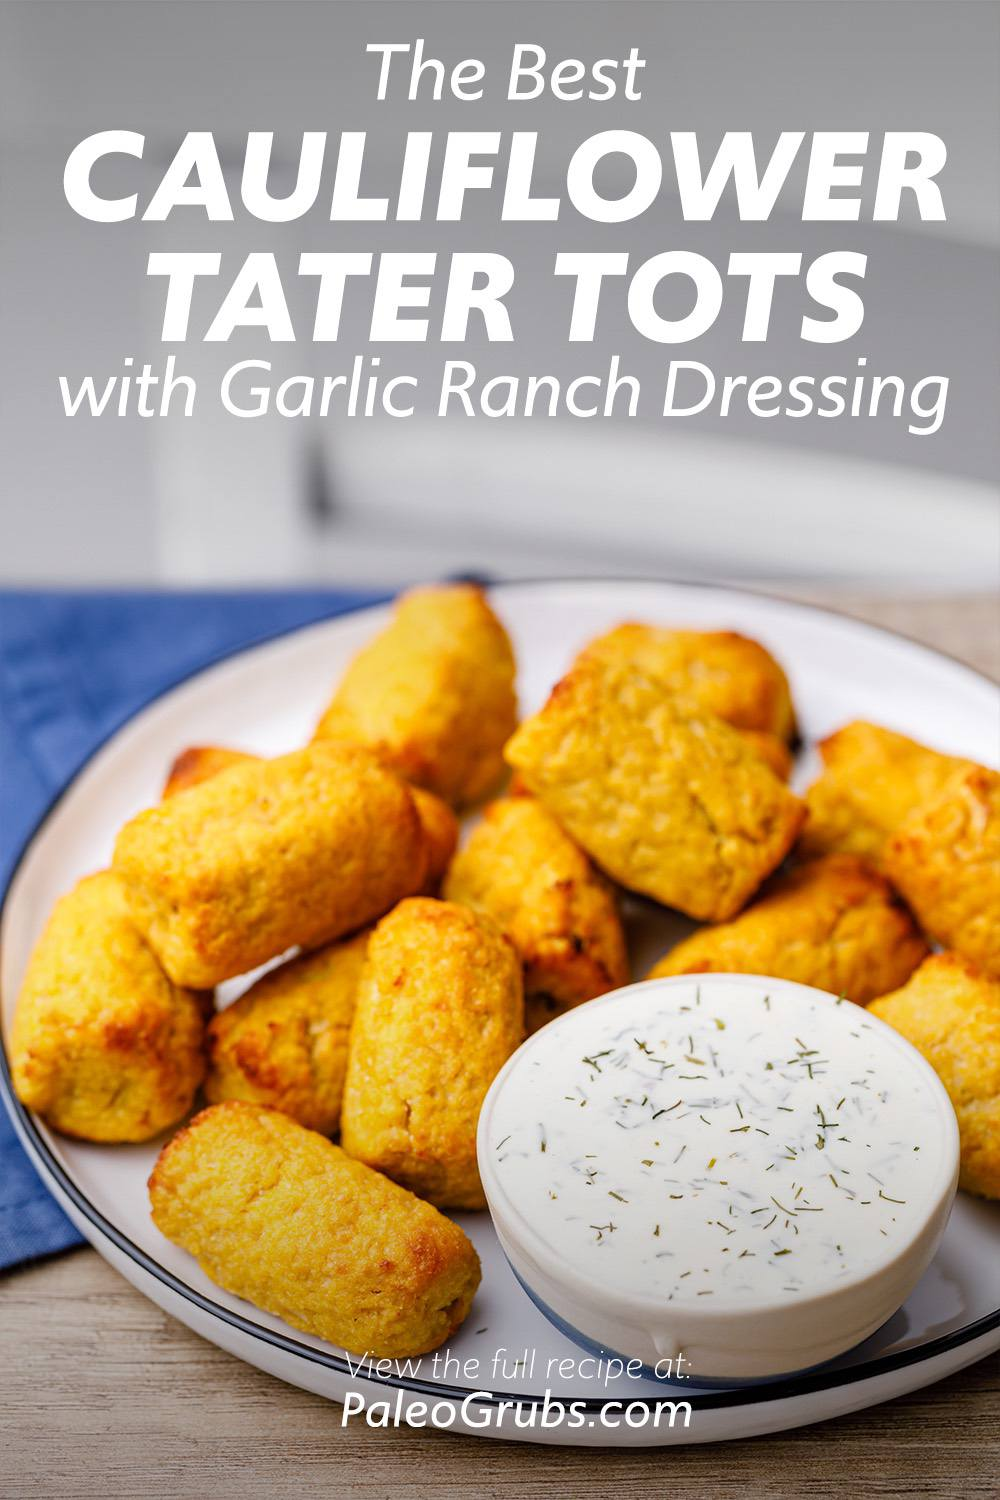 The Best Cauliflower Tater Tots with Homemade Garlic Ranch